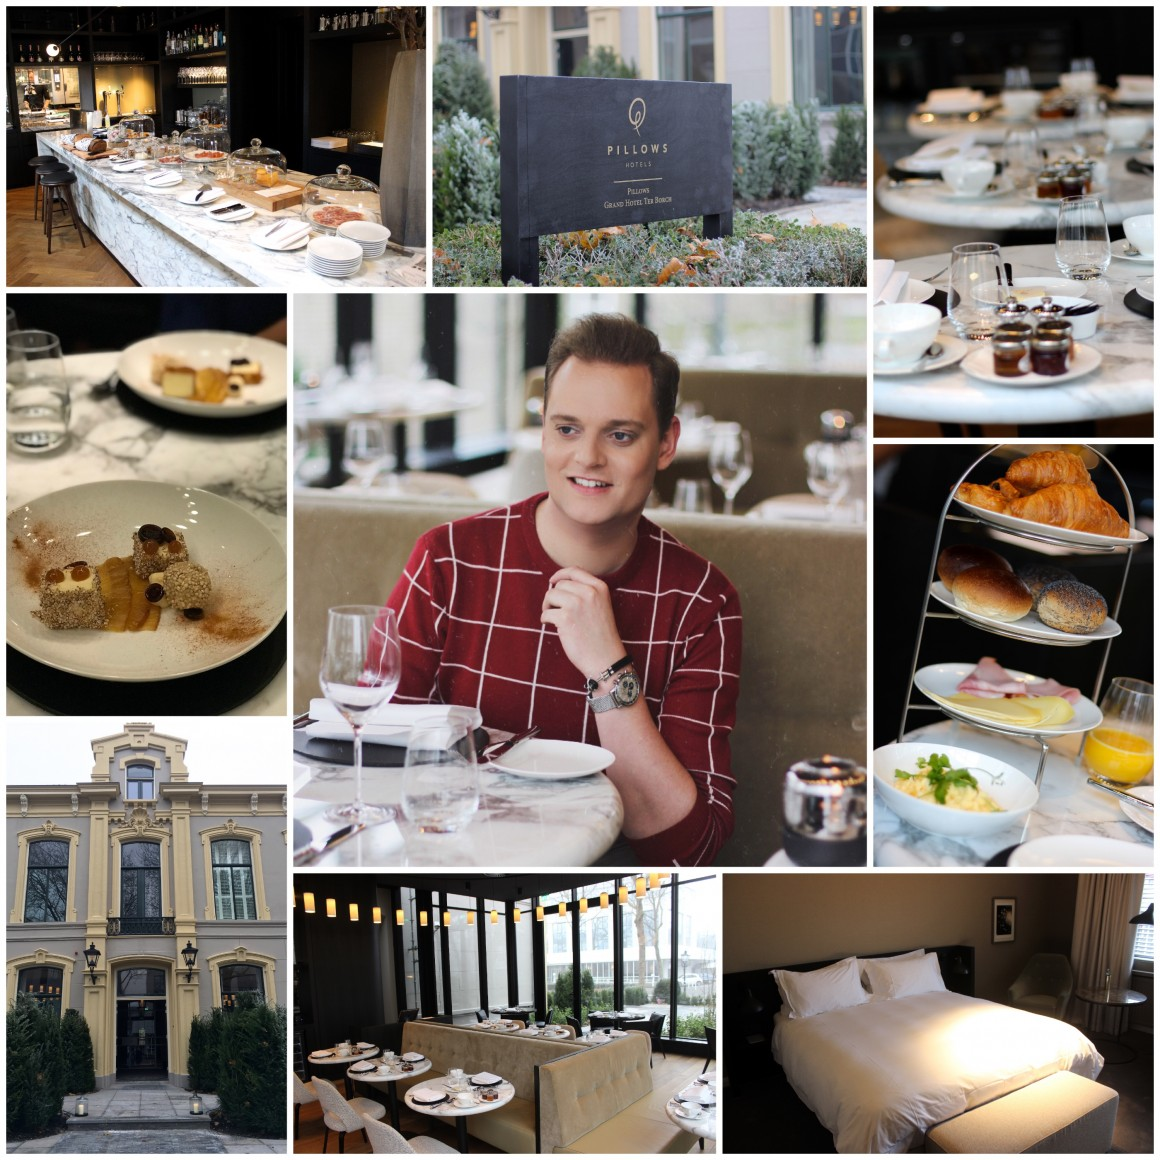 Staycation at Pillows Grand Hotel Ter Borch Review JustKVN menswear and lifestyle blog